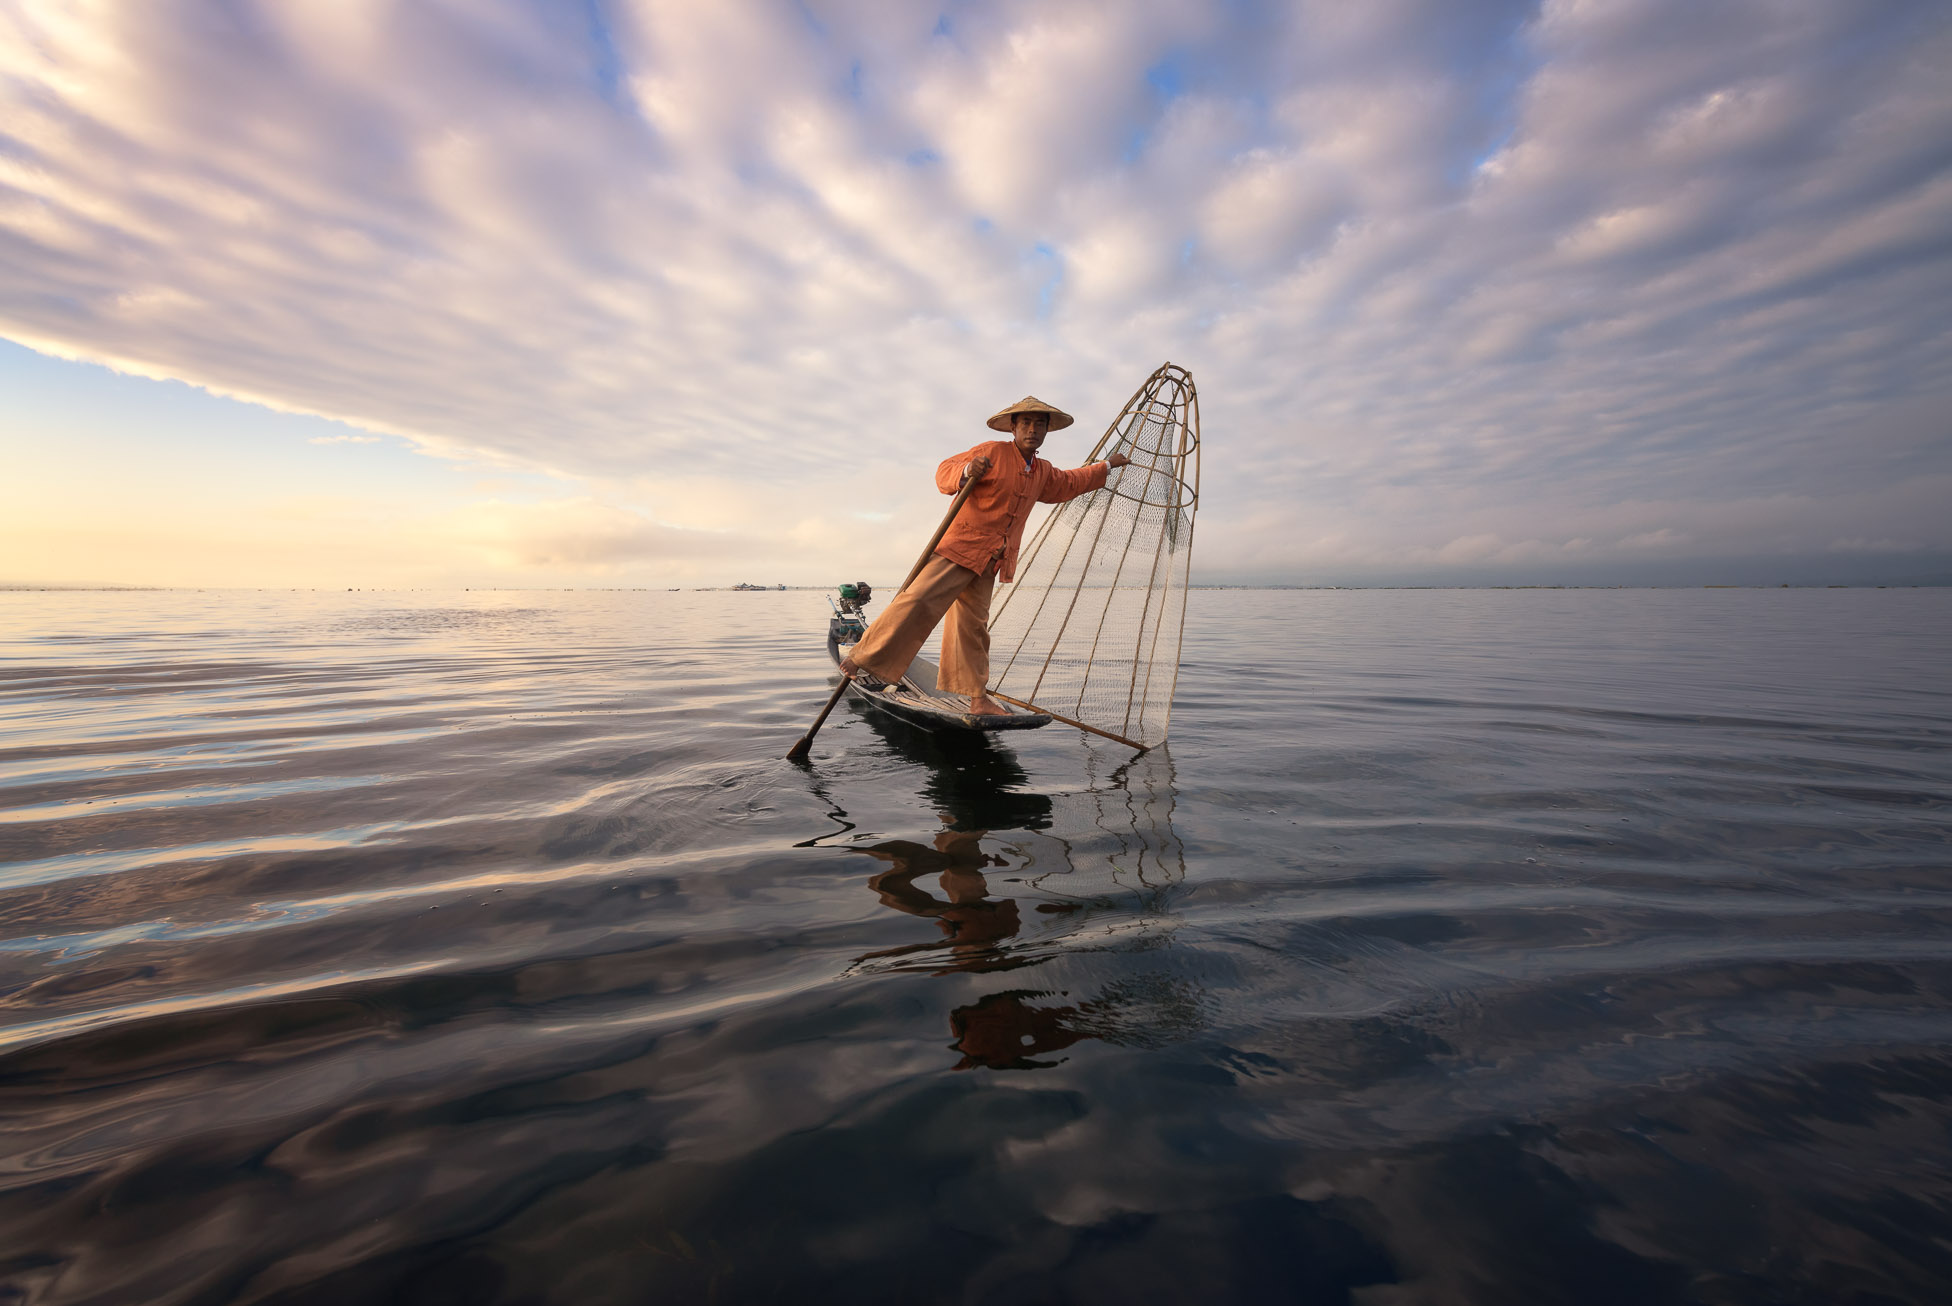 Burmese Fisherman on the Boat with Traditional Conical Net in the Morning, Lake Inle, Myanmar